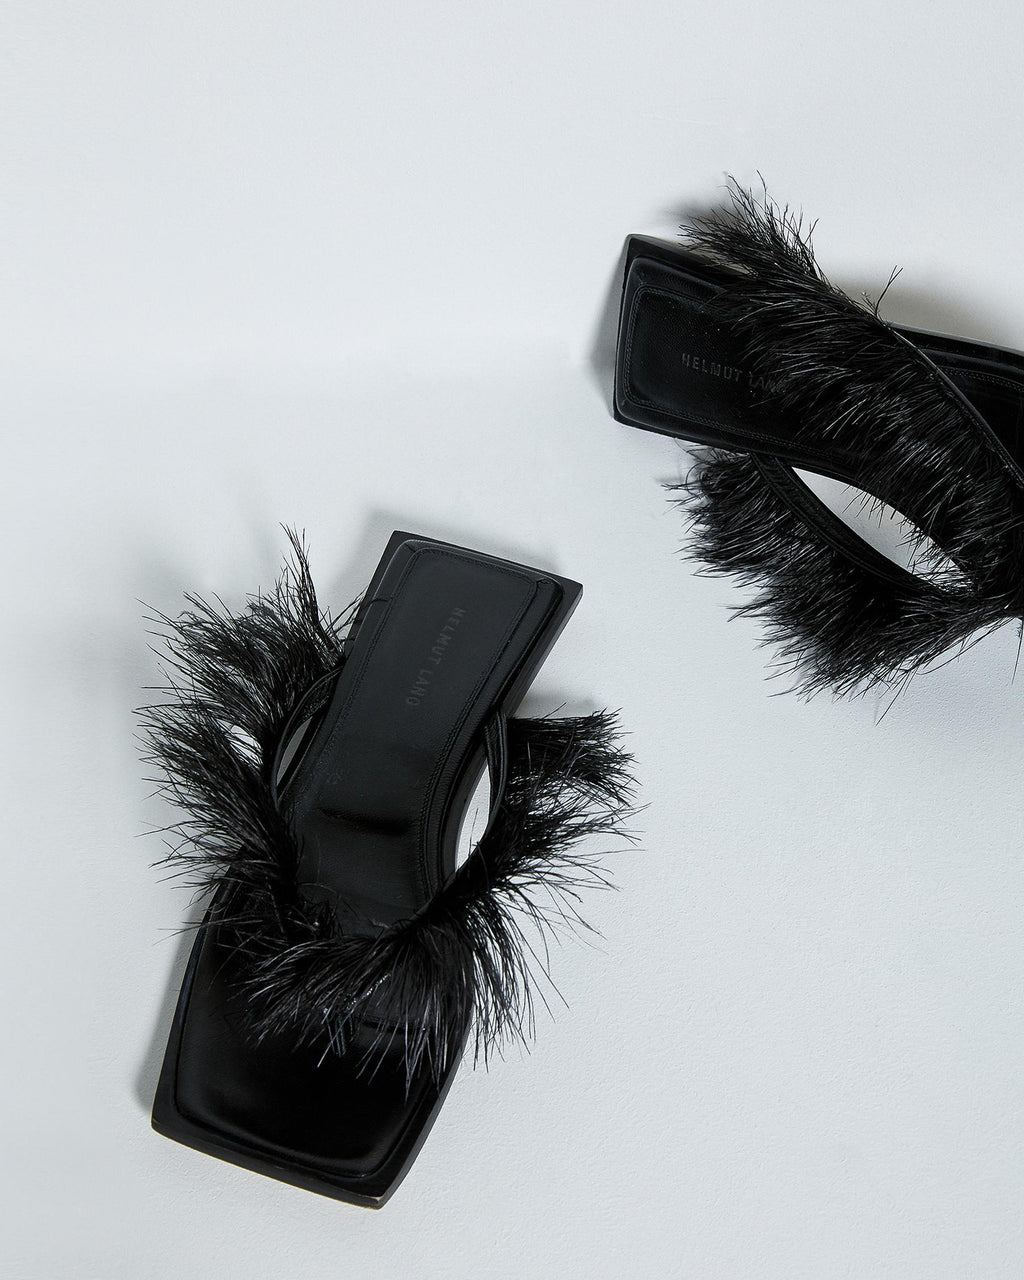 Helmut Lang Black Feather Square Toe Thongs, Size 36, US 6